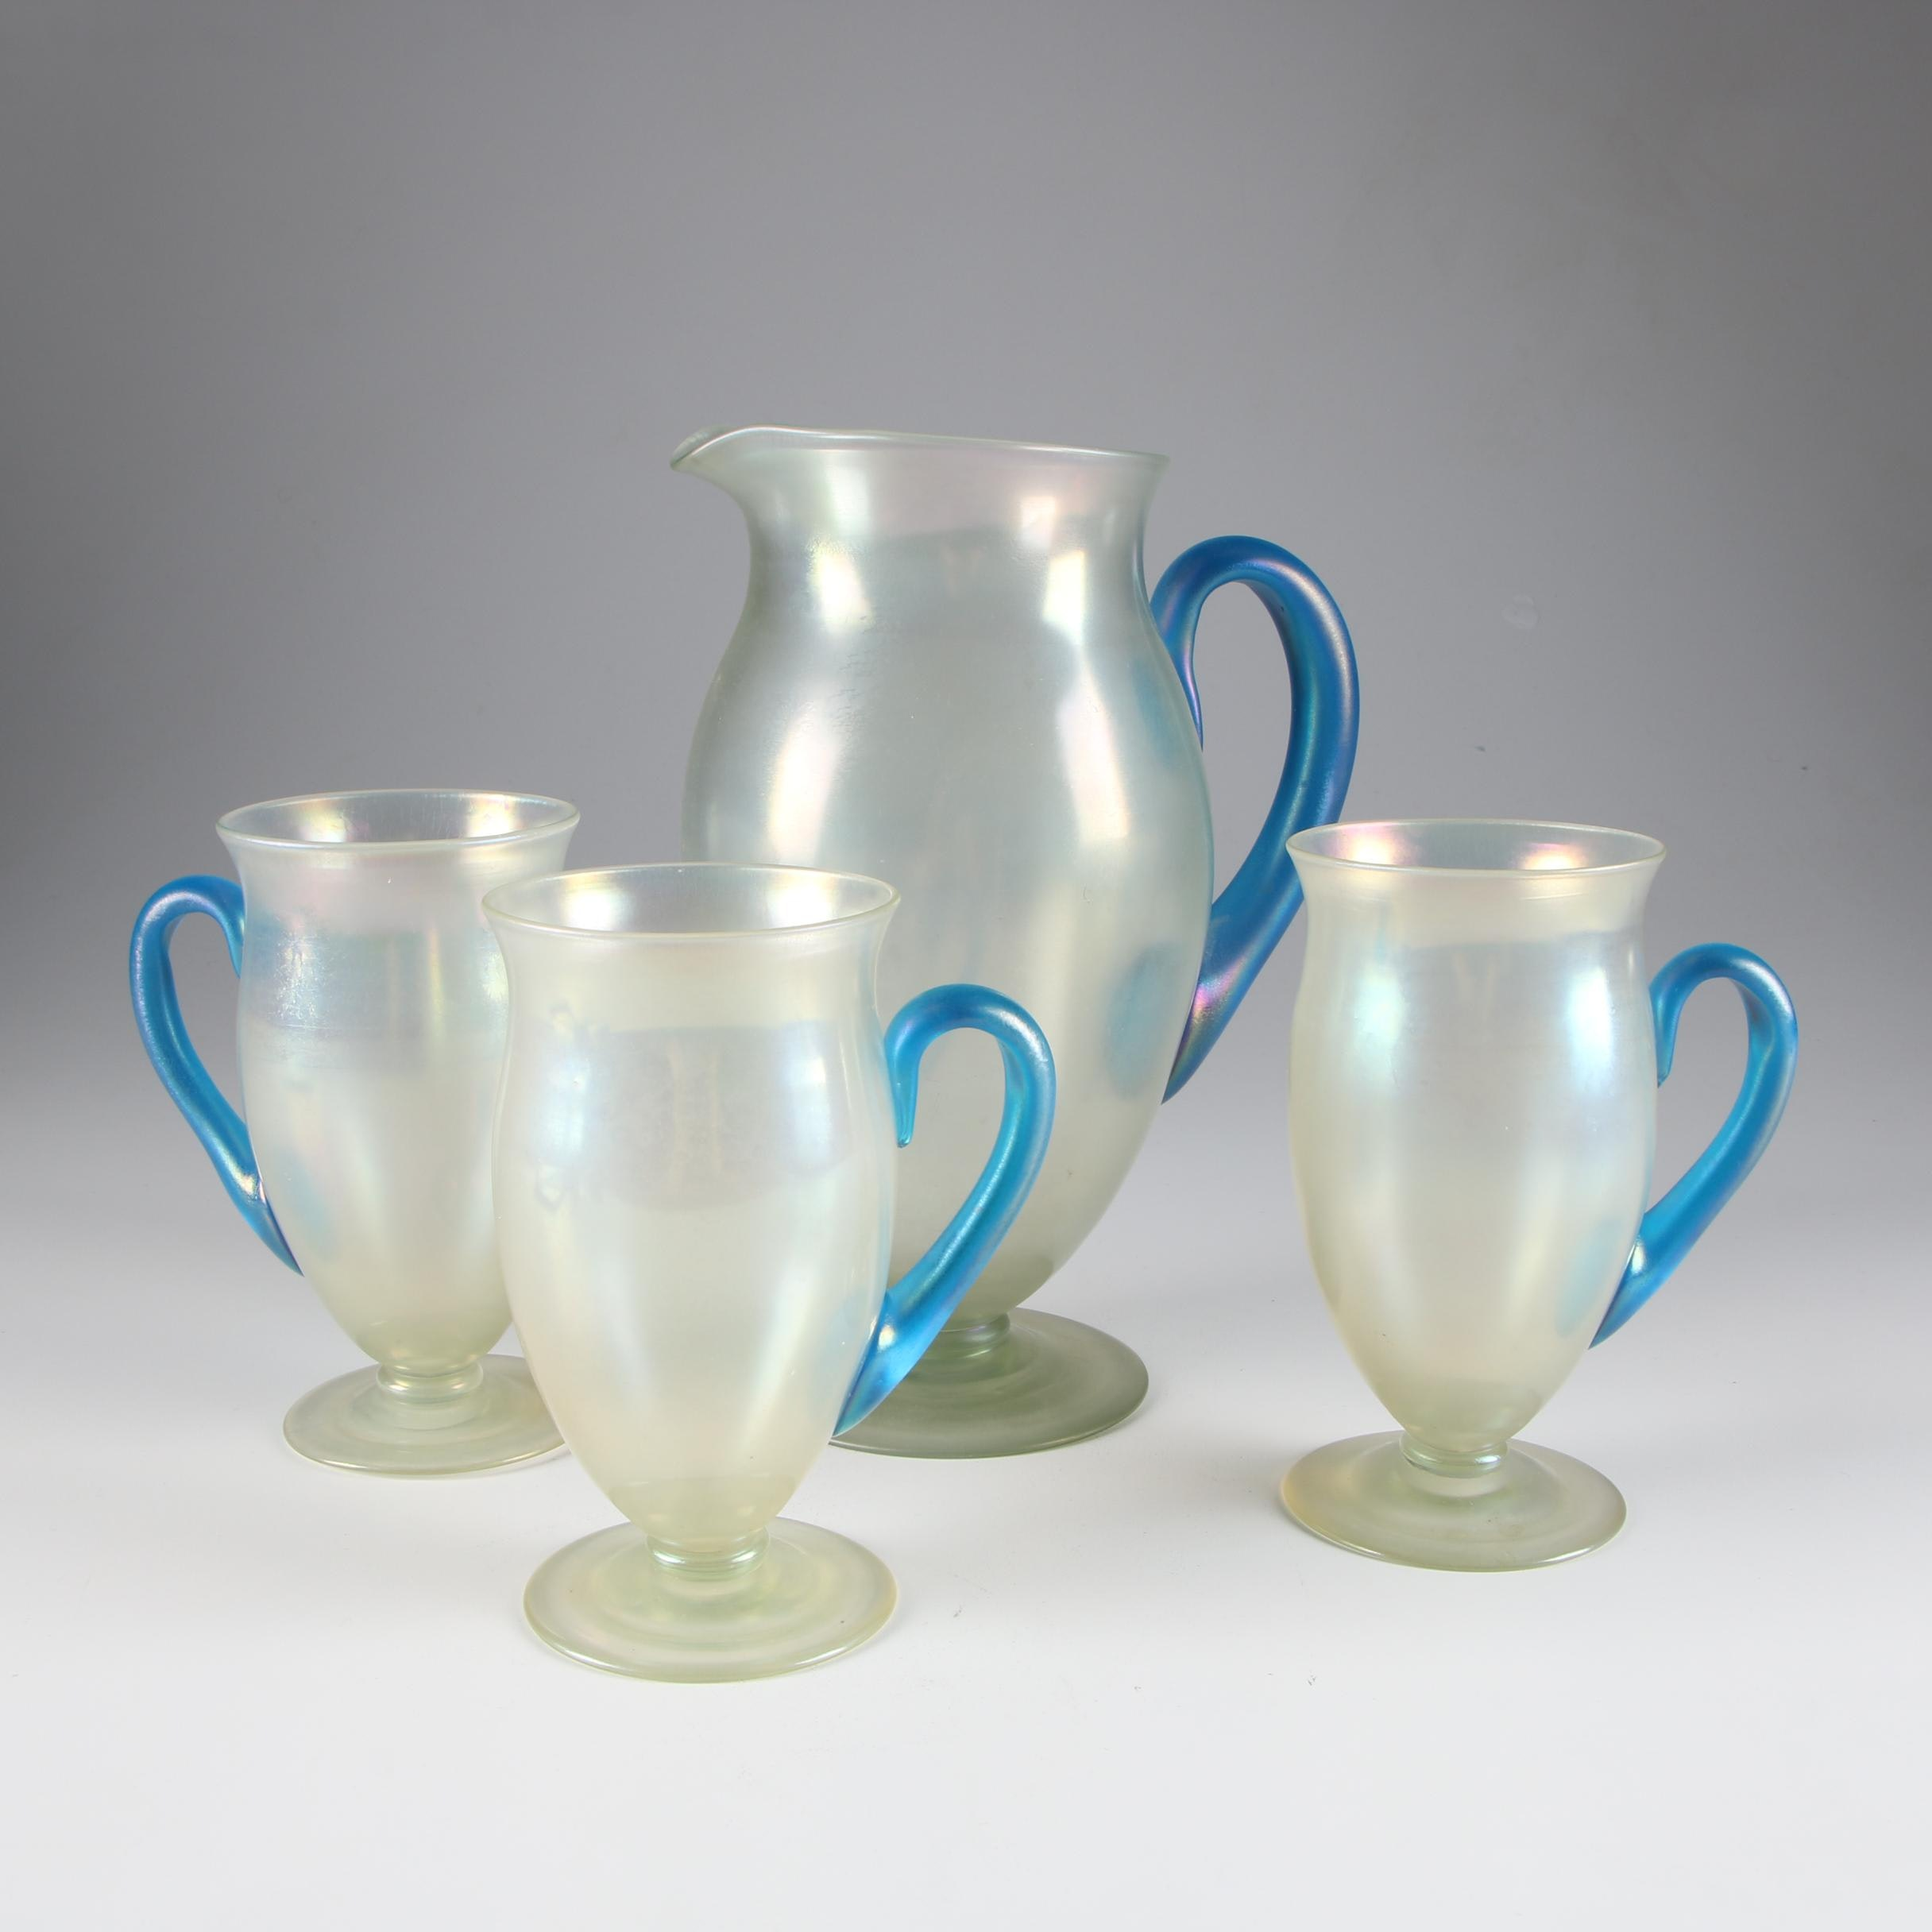 Steuben Cyprian and Celeste Blue Art Glass Pitcher and Lemonade Glasses